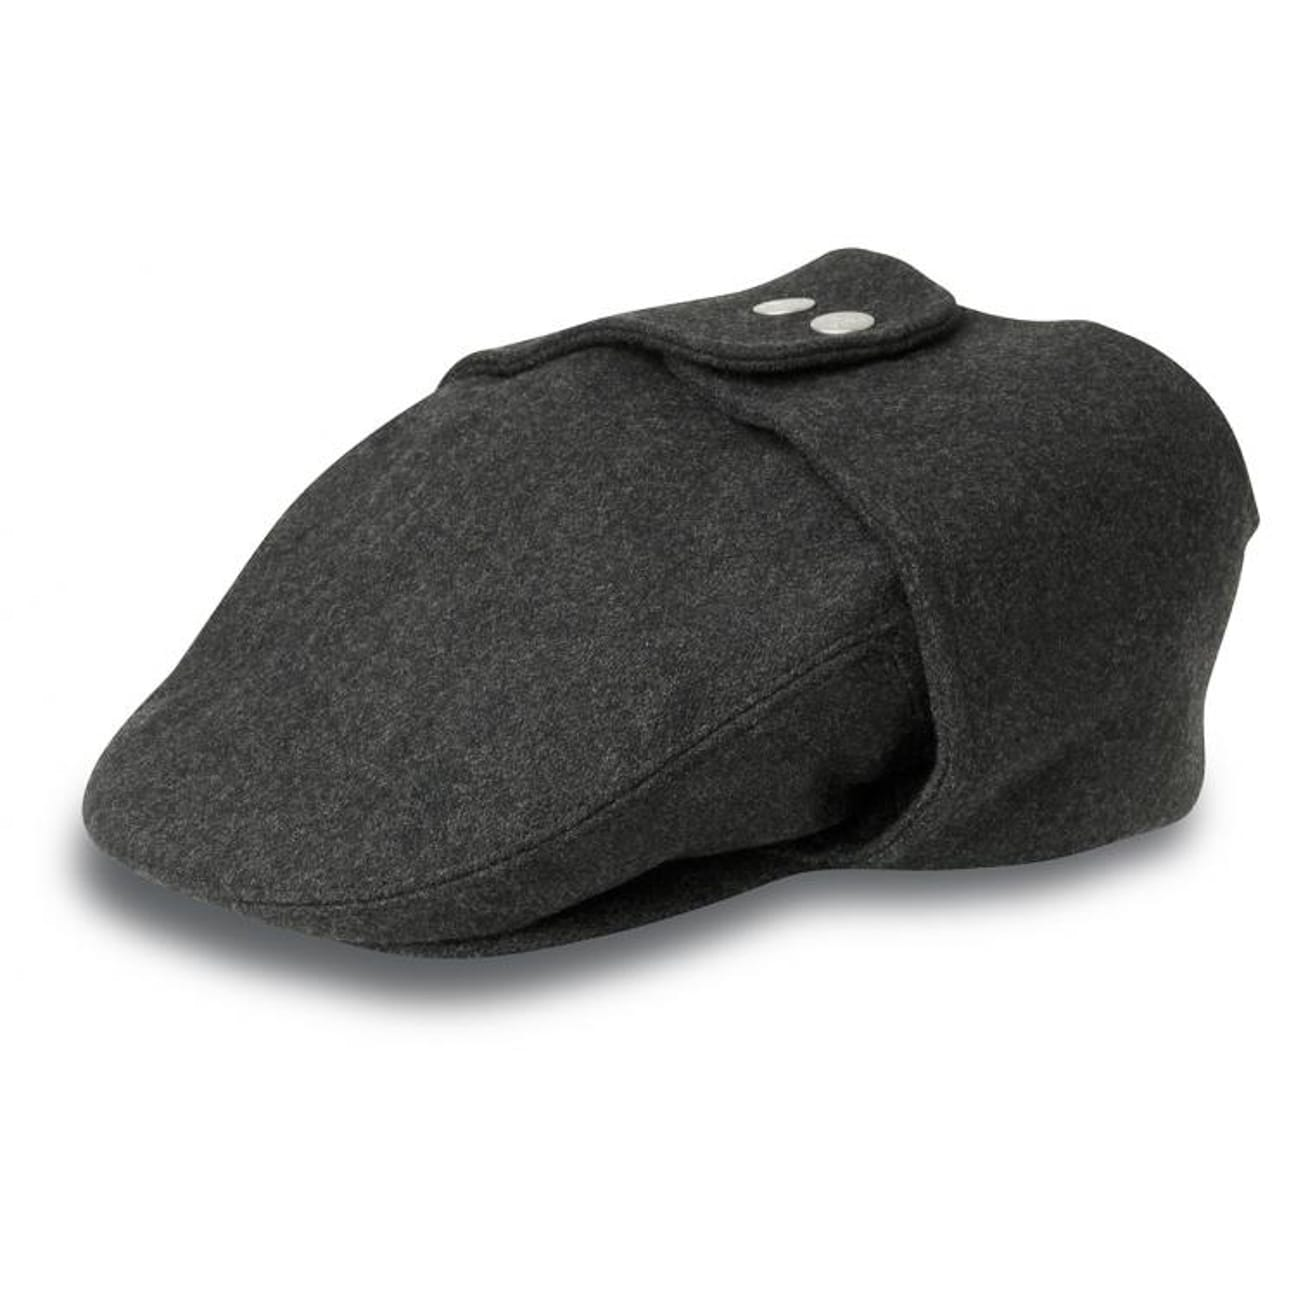 a31a22485eb Kangol Wool 504 Earflaps Flat Cap - Black from Village Hats.